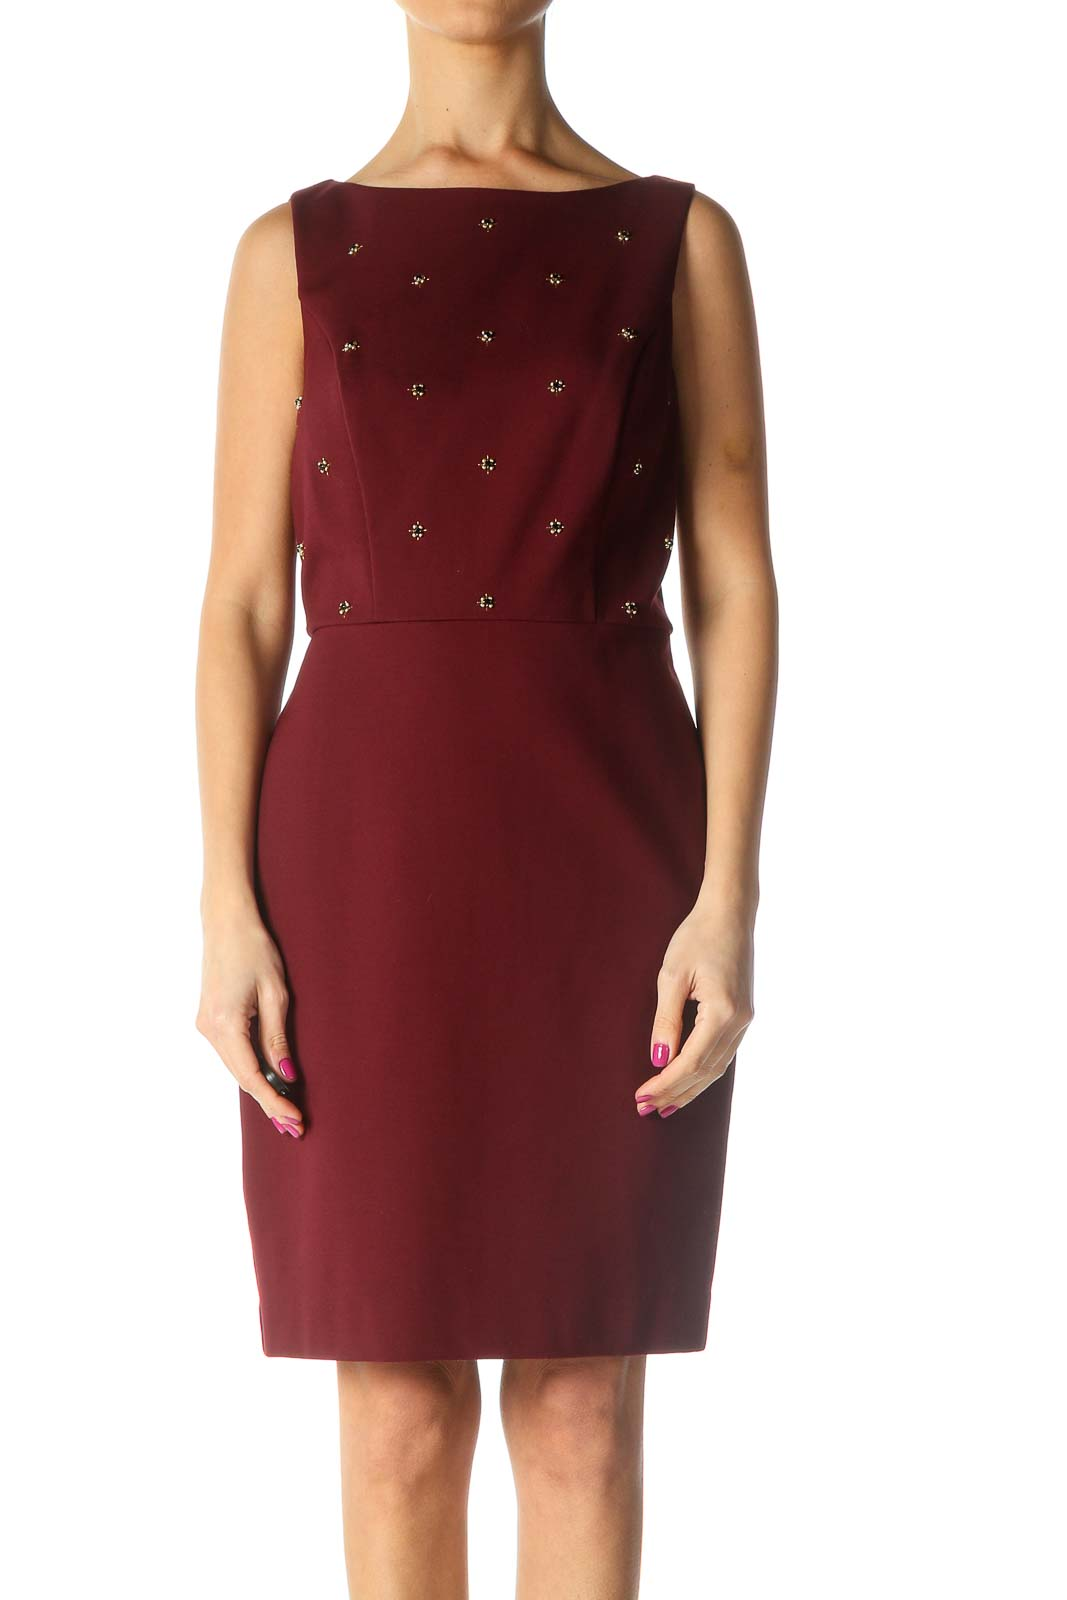 Red Solid Chic Sheath Dress Front